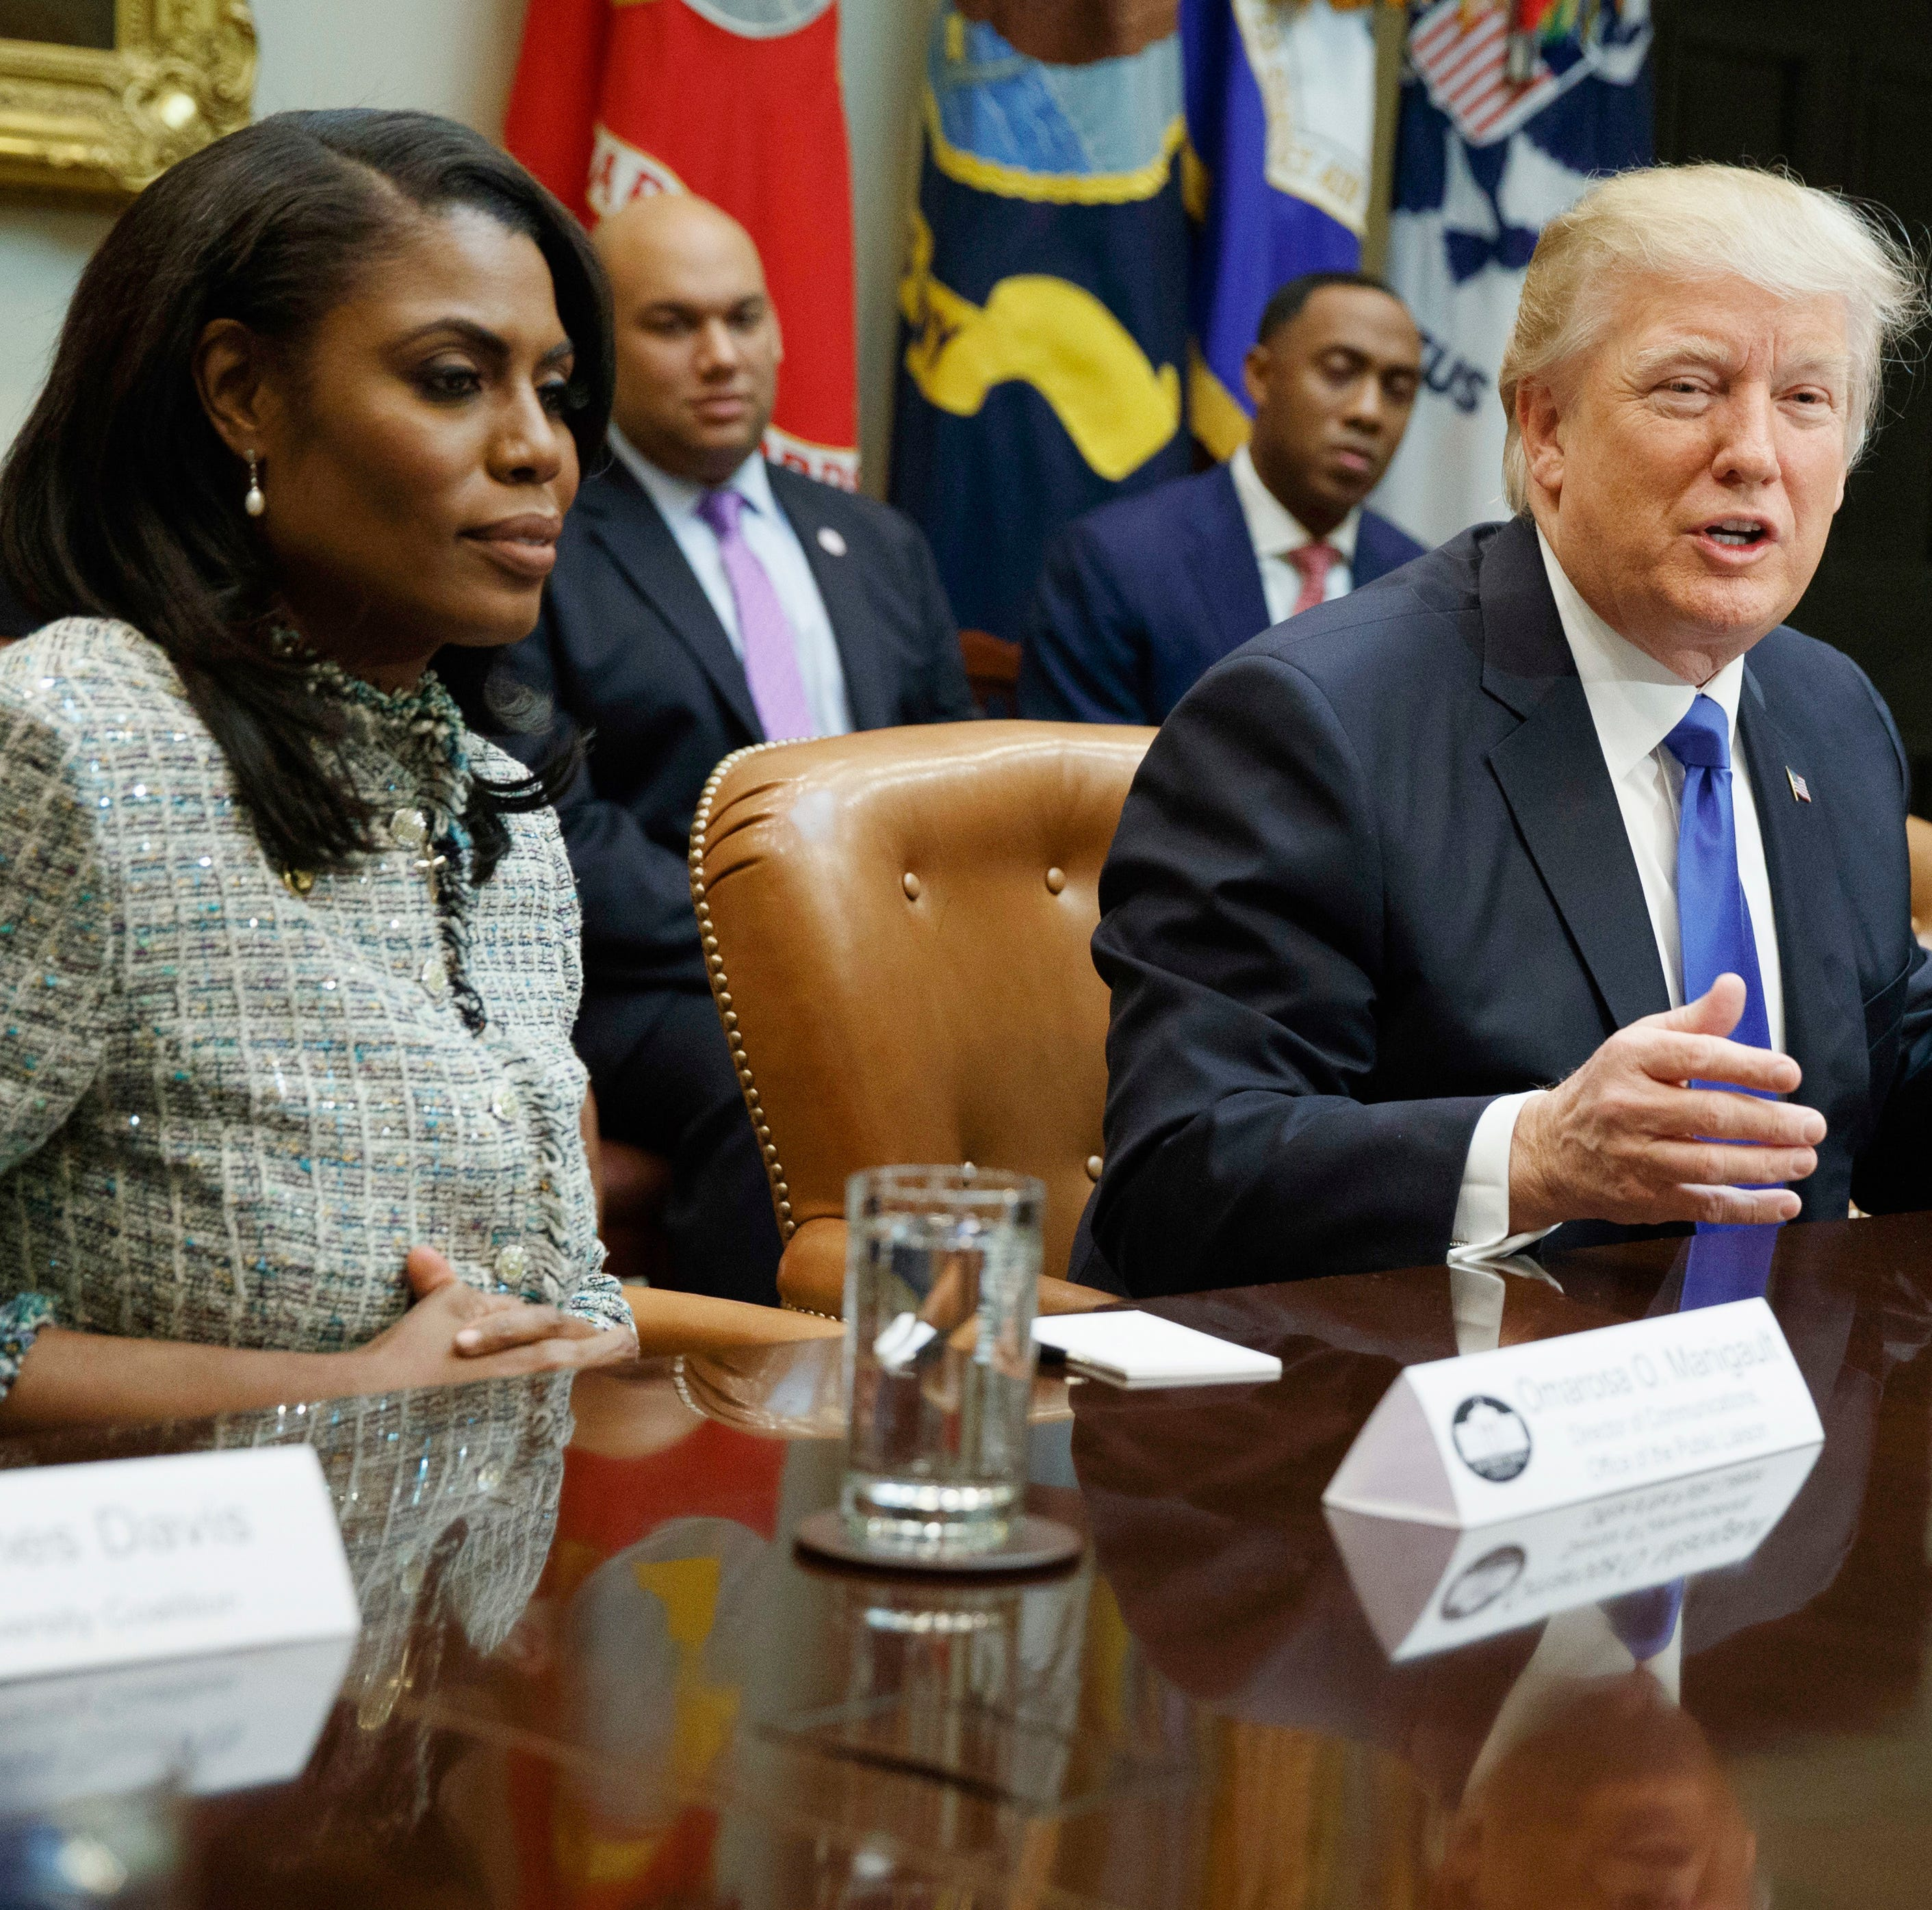 Donald Trump calls former aide Omarosa a 'dog,' triggering outrage